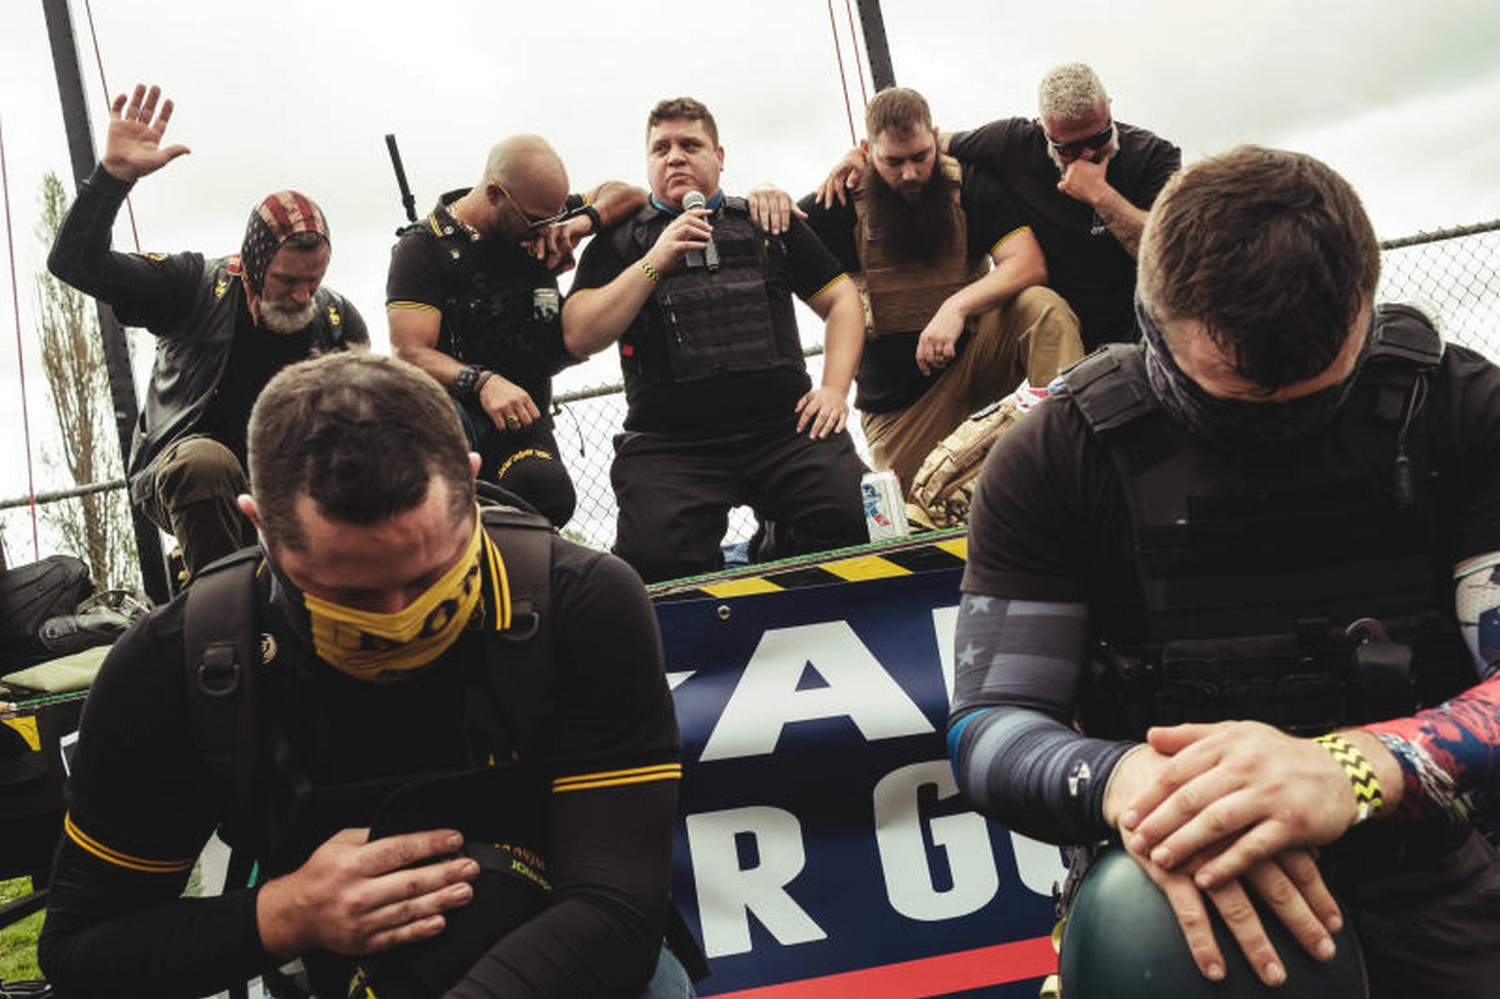 Members of the alt-right group, the Proud Boys, pray during a rally in Portland, Oregon, on Sept. 26 (Photo: New York Times)